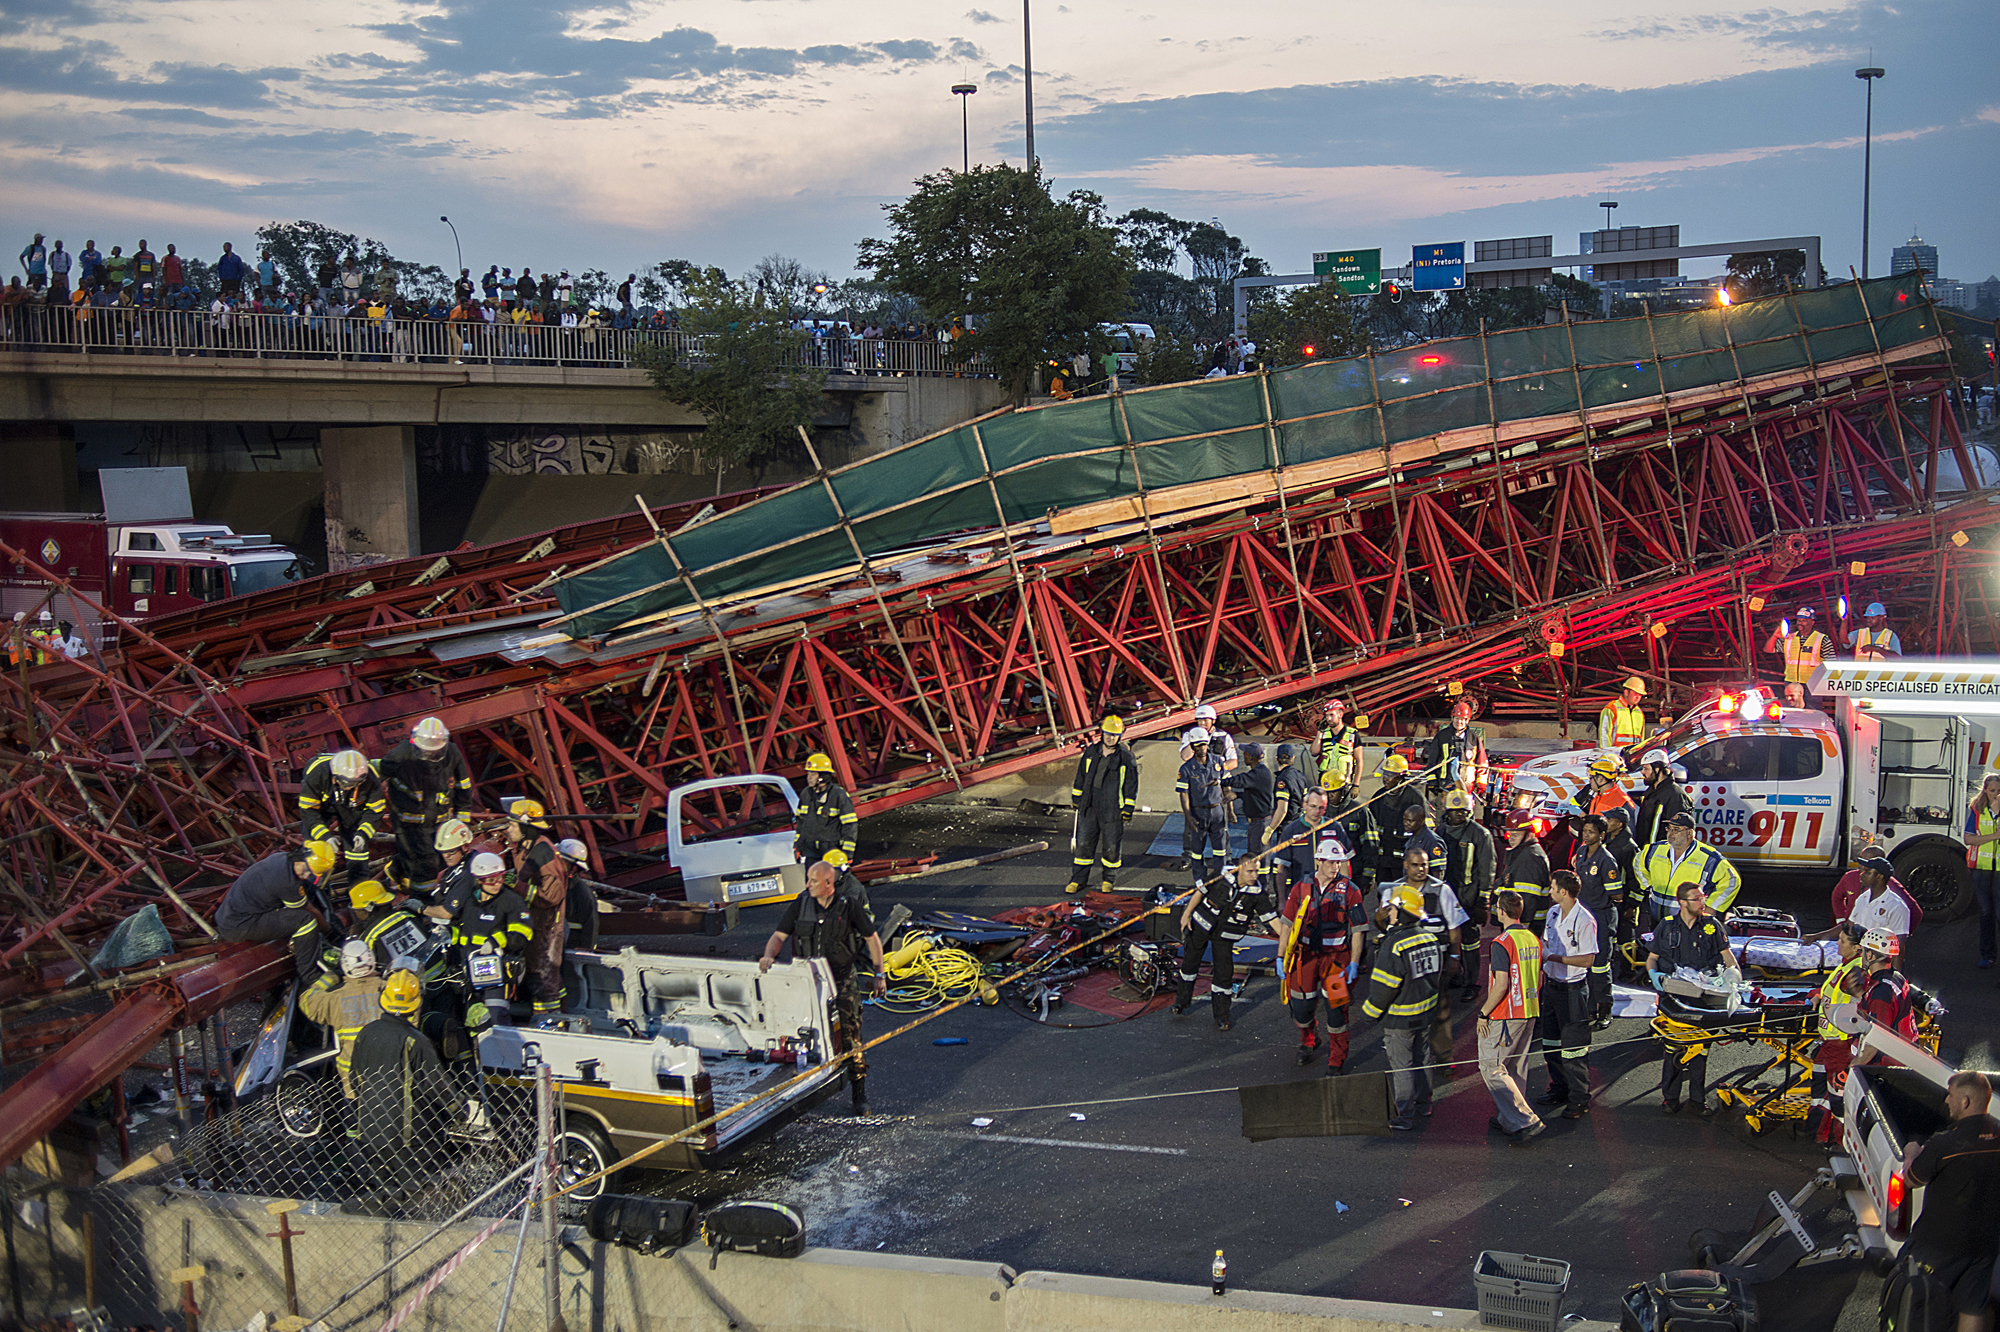 South African paramedics and first aid workers work on the rubble of a collapsed pedestrian bridge where at least two people were killed, on October 14, 2015 in Johannesburg. AFP PHOTO / MUJAHID SAFODIEN